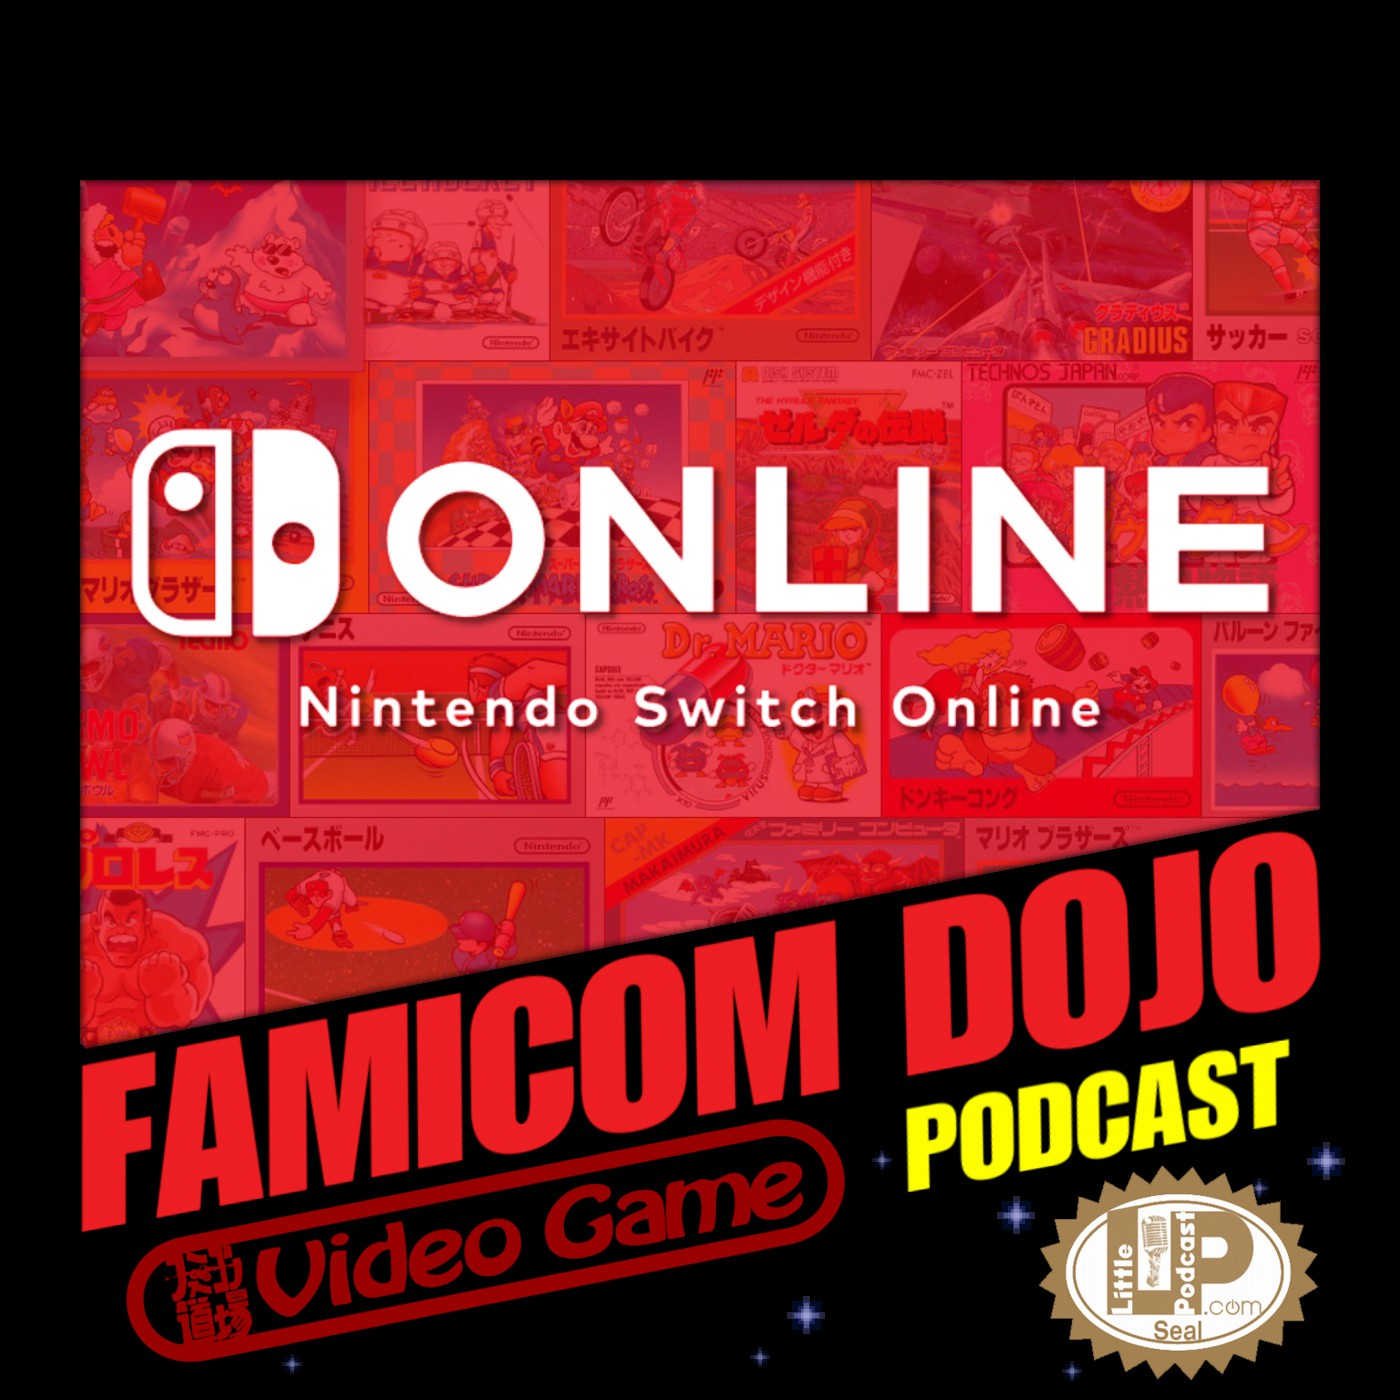 154: The Price of Nintendo Switch Online